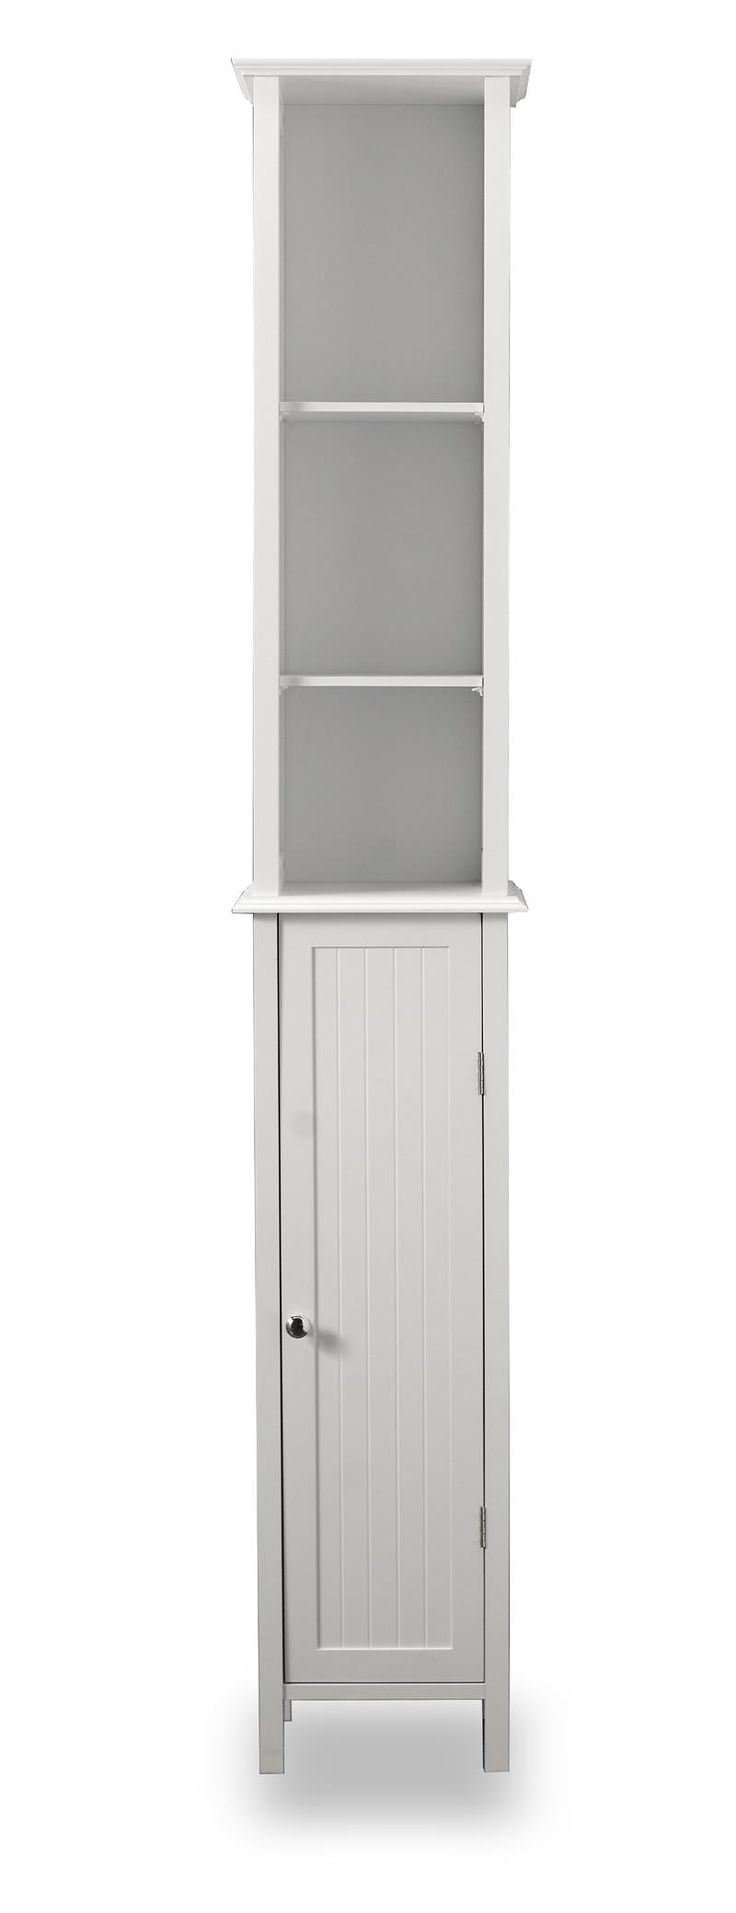 Bathroom cabinets freestanding - Tall White Shaker Style Bathroom Cabinet Freestanding As It Pertains To Toilets Space Is Restricted